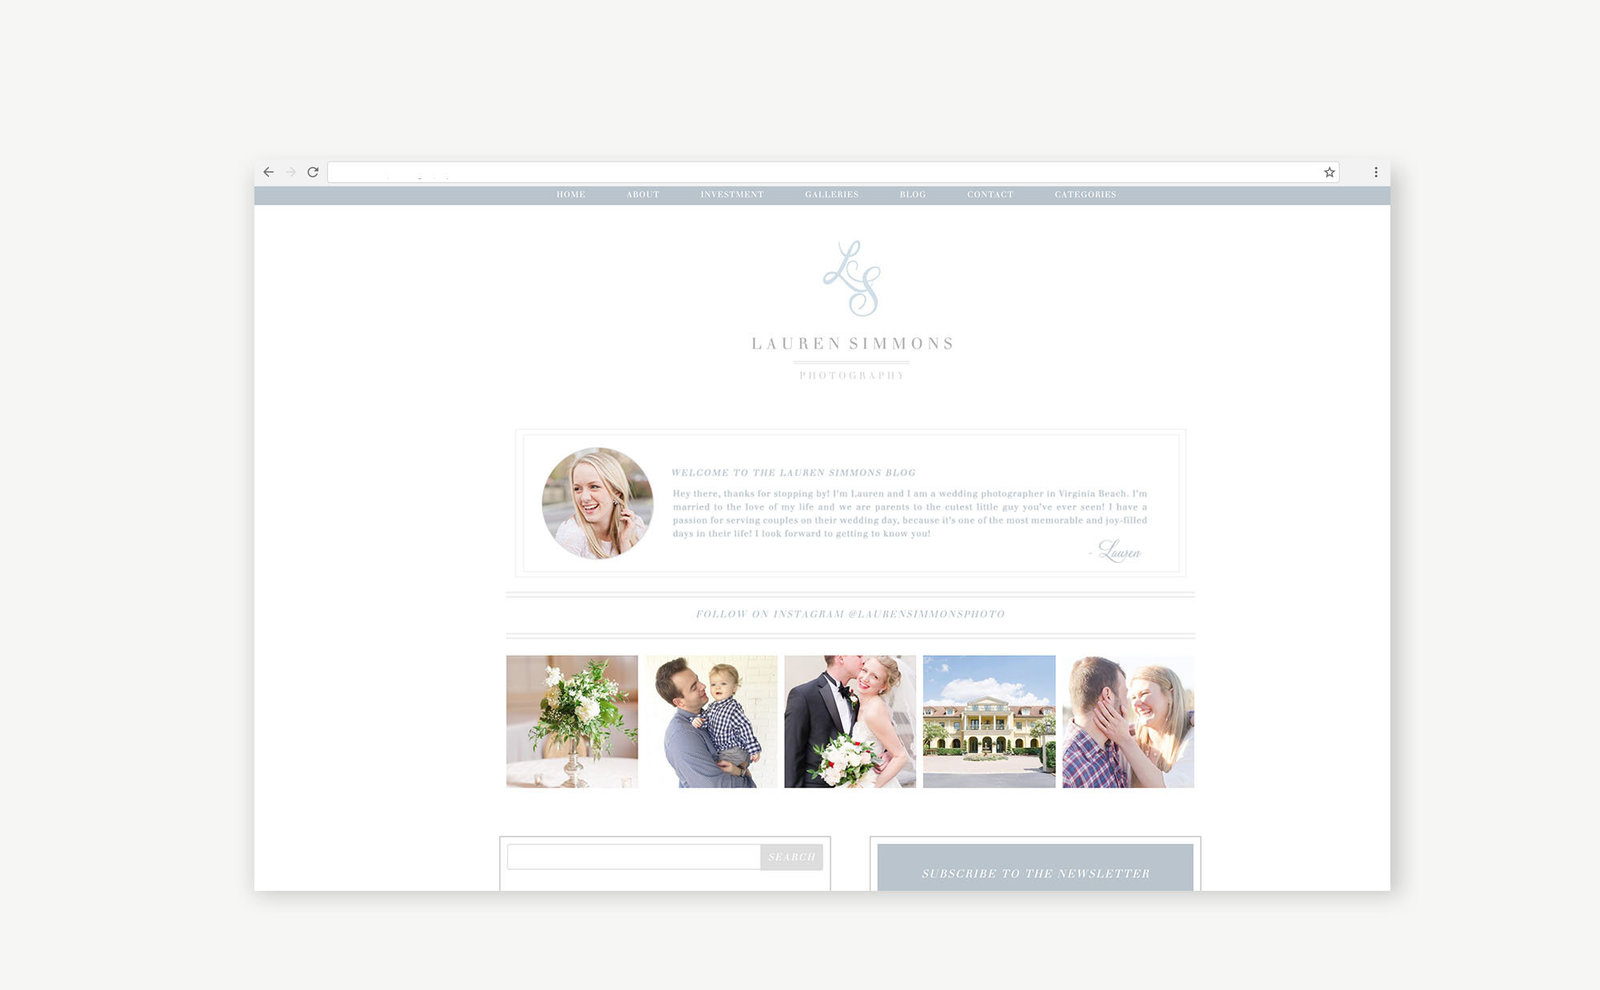 branding-for-photographers-web-design-lauren-simmons-05